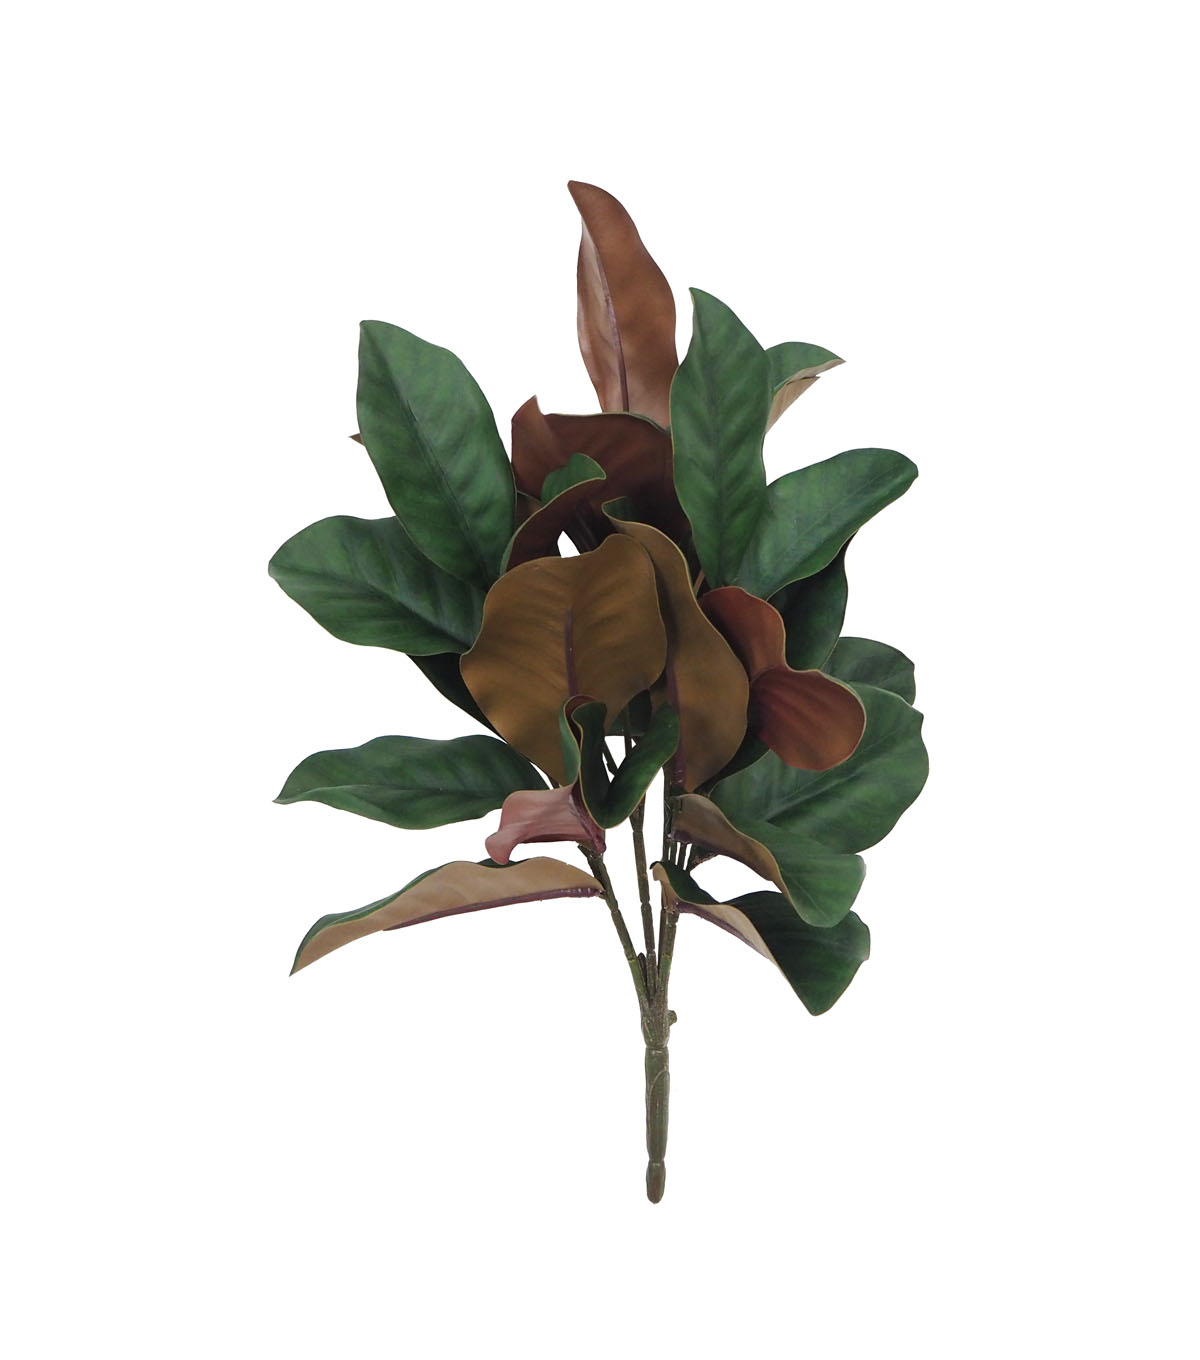 Handmade Holiday Christmas Homestead Magnolia Leaf Bush-Green